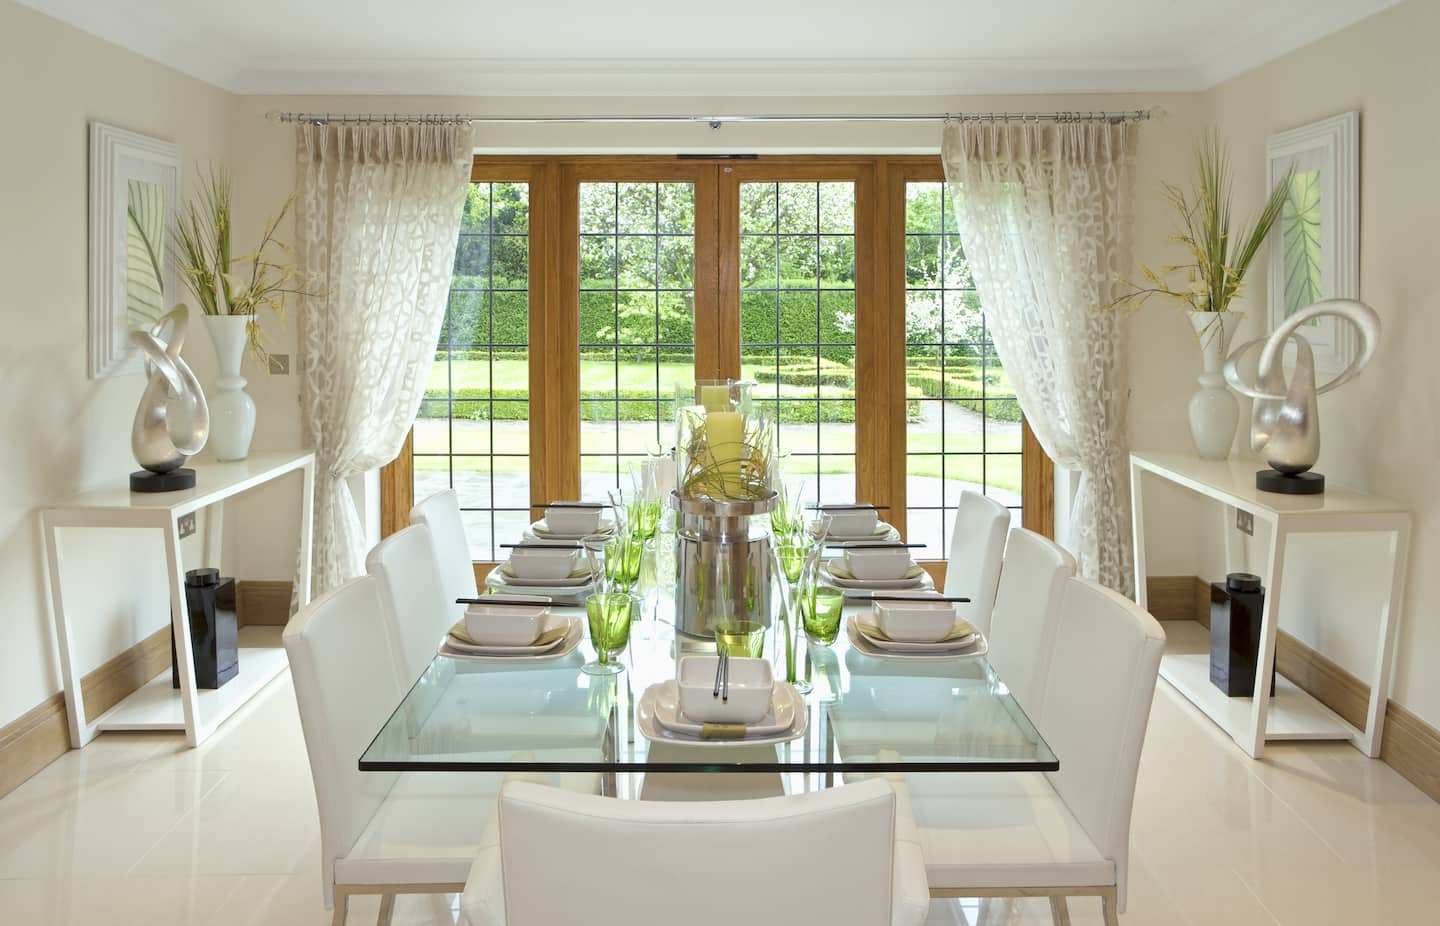 Contemporary Formal Dining Room With White Chairs Gl Table Garden View Through Doors